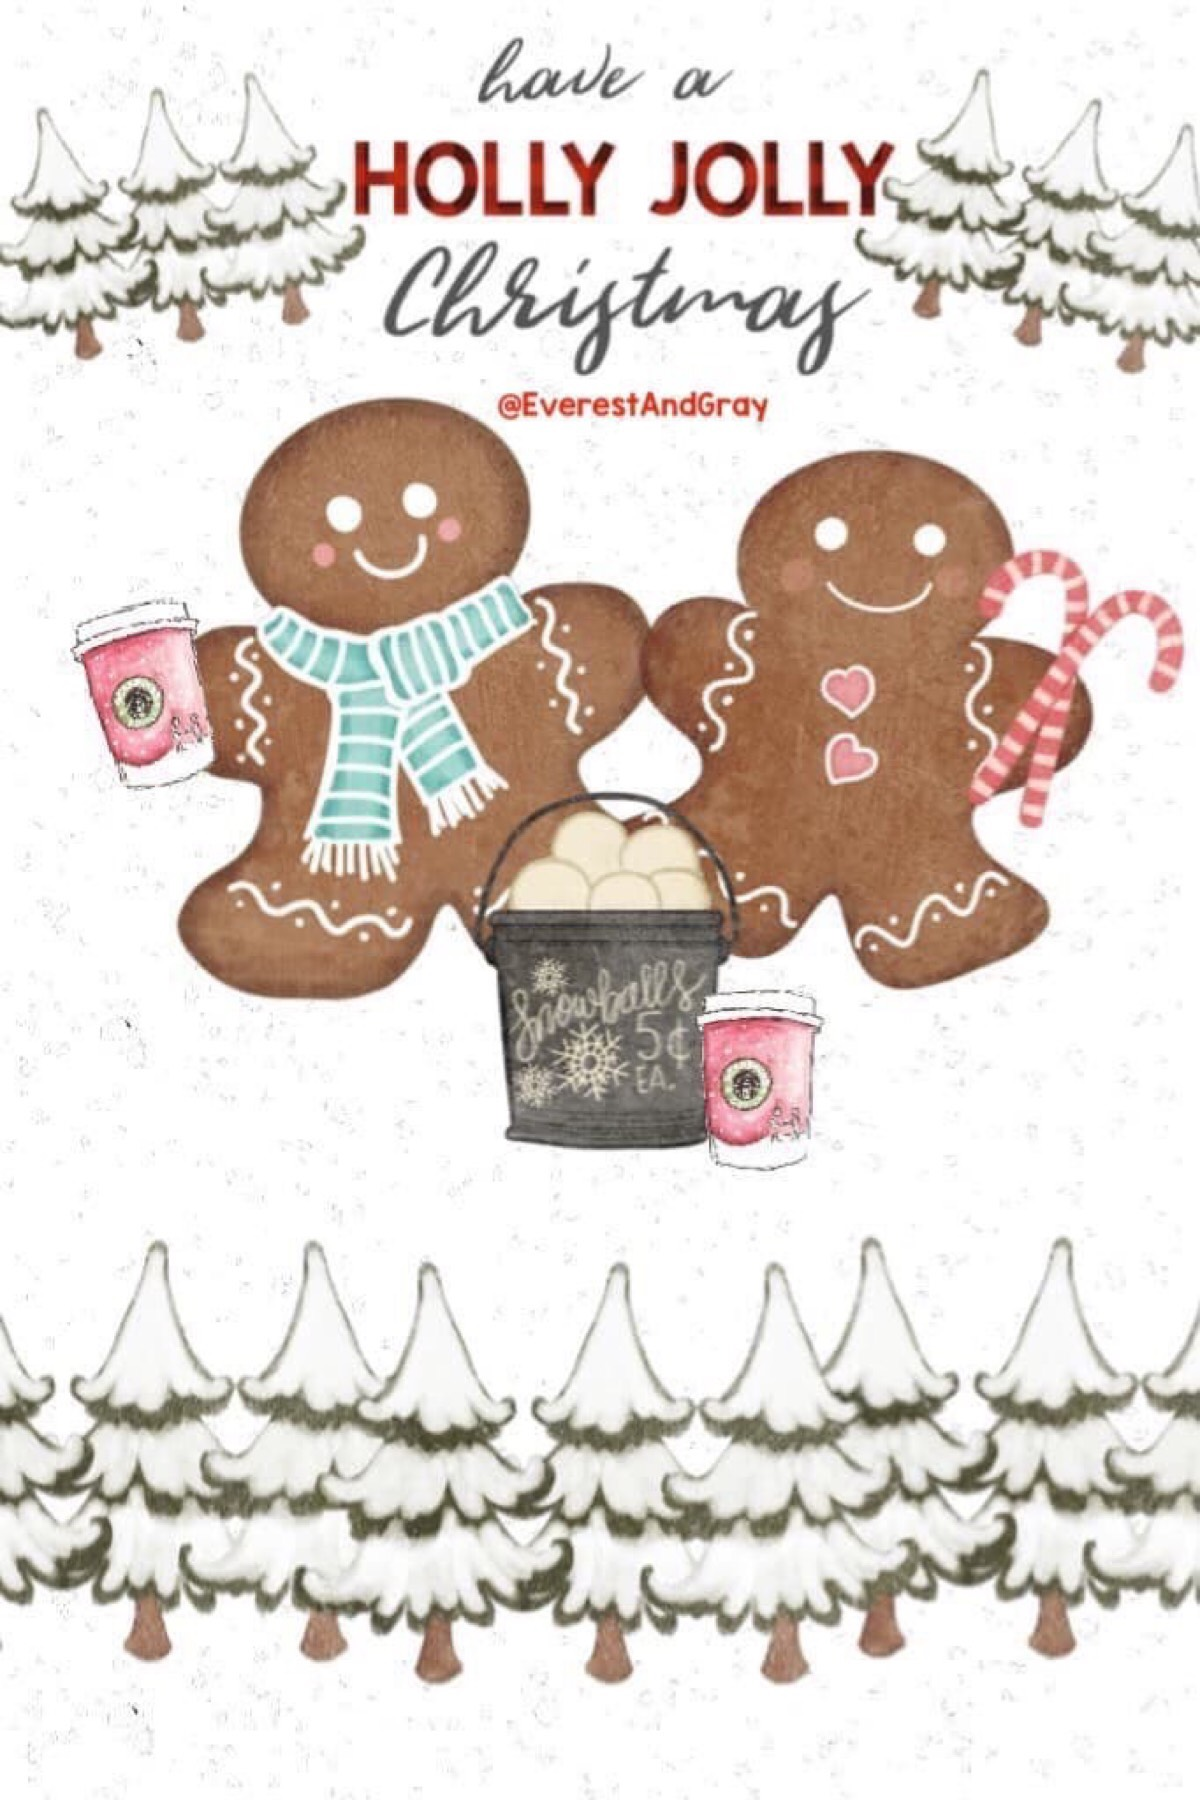 🌲Have a #HollyJollyChristmas! 🛷☃️🍭What do you guys think of these gingerbread cuties?🌲 #Christmas @piccollage #gingerbread #cute